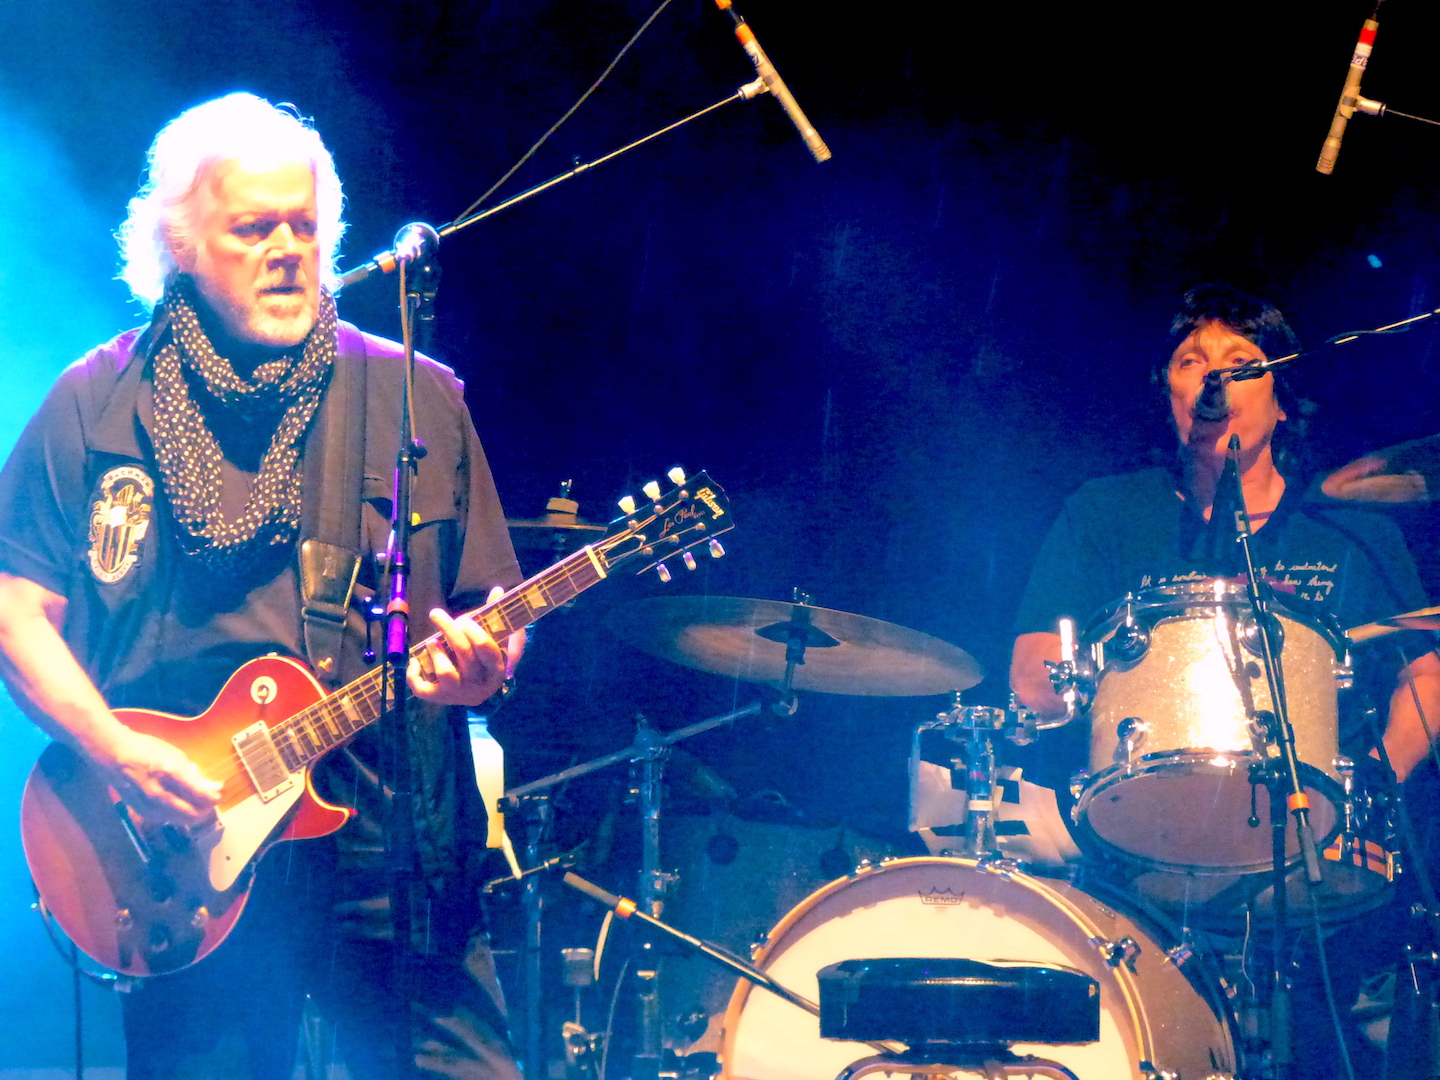 Despite a delay, then rain, Randy Bachman performed a full set at Artpark.